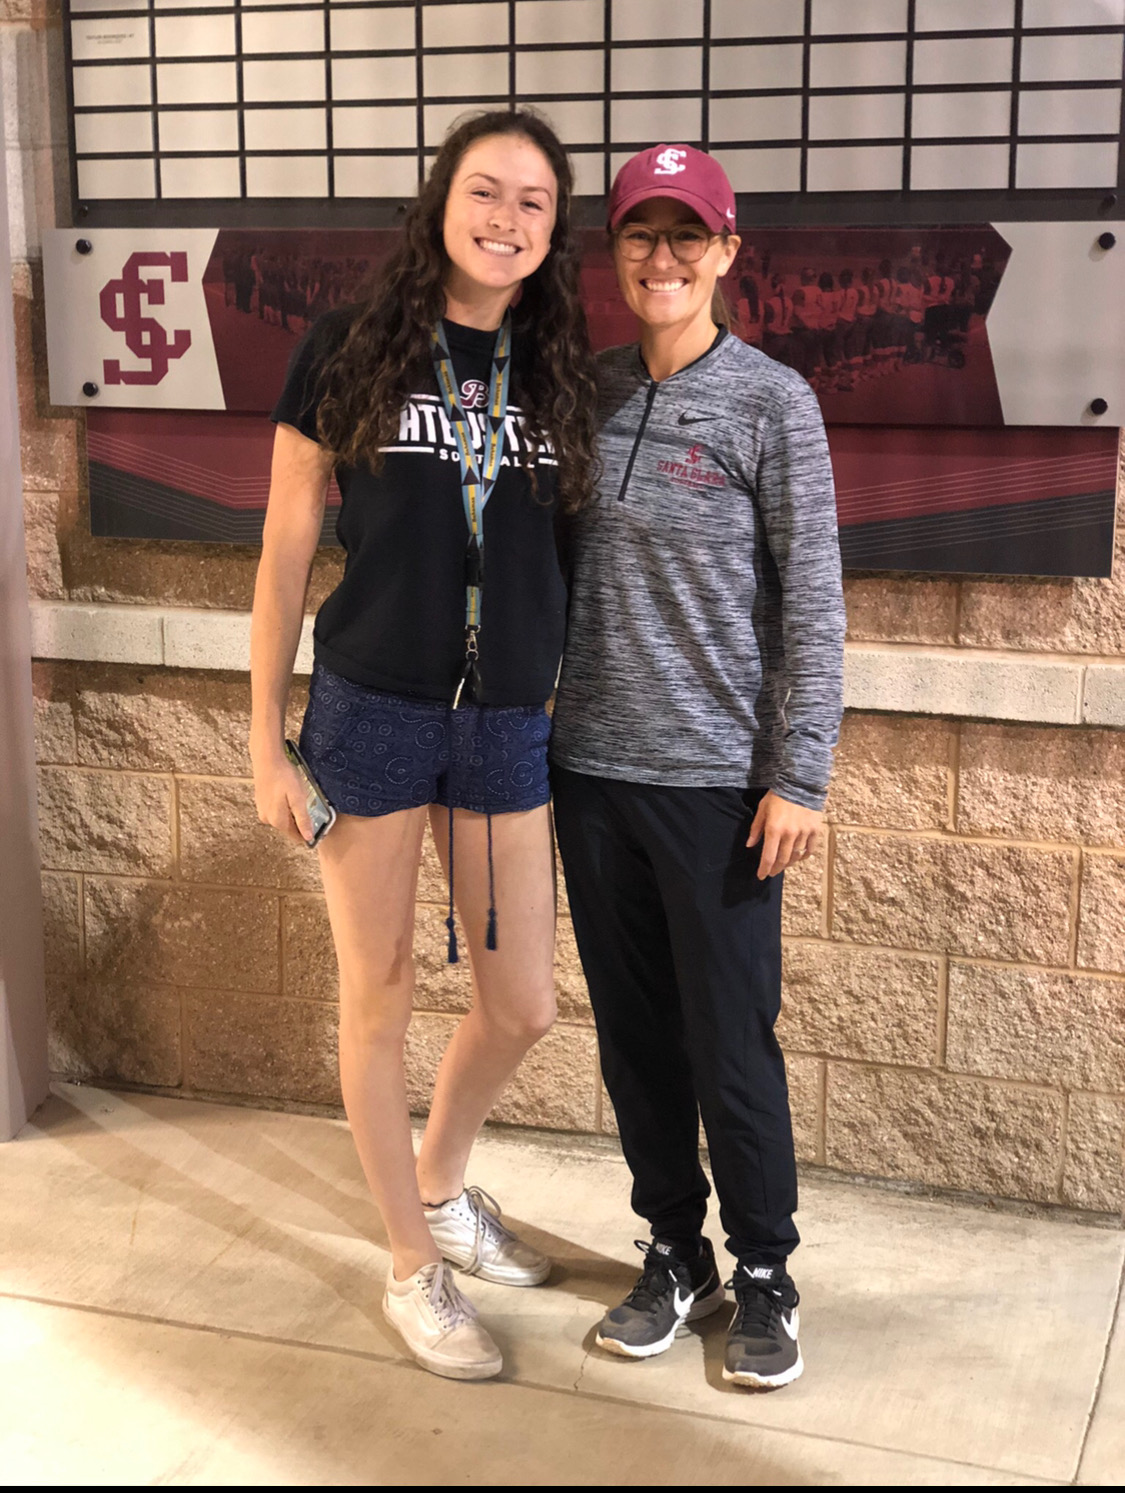 Morgan Salmon commits to Santa Clara University!